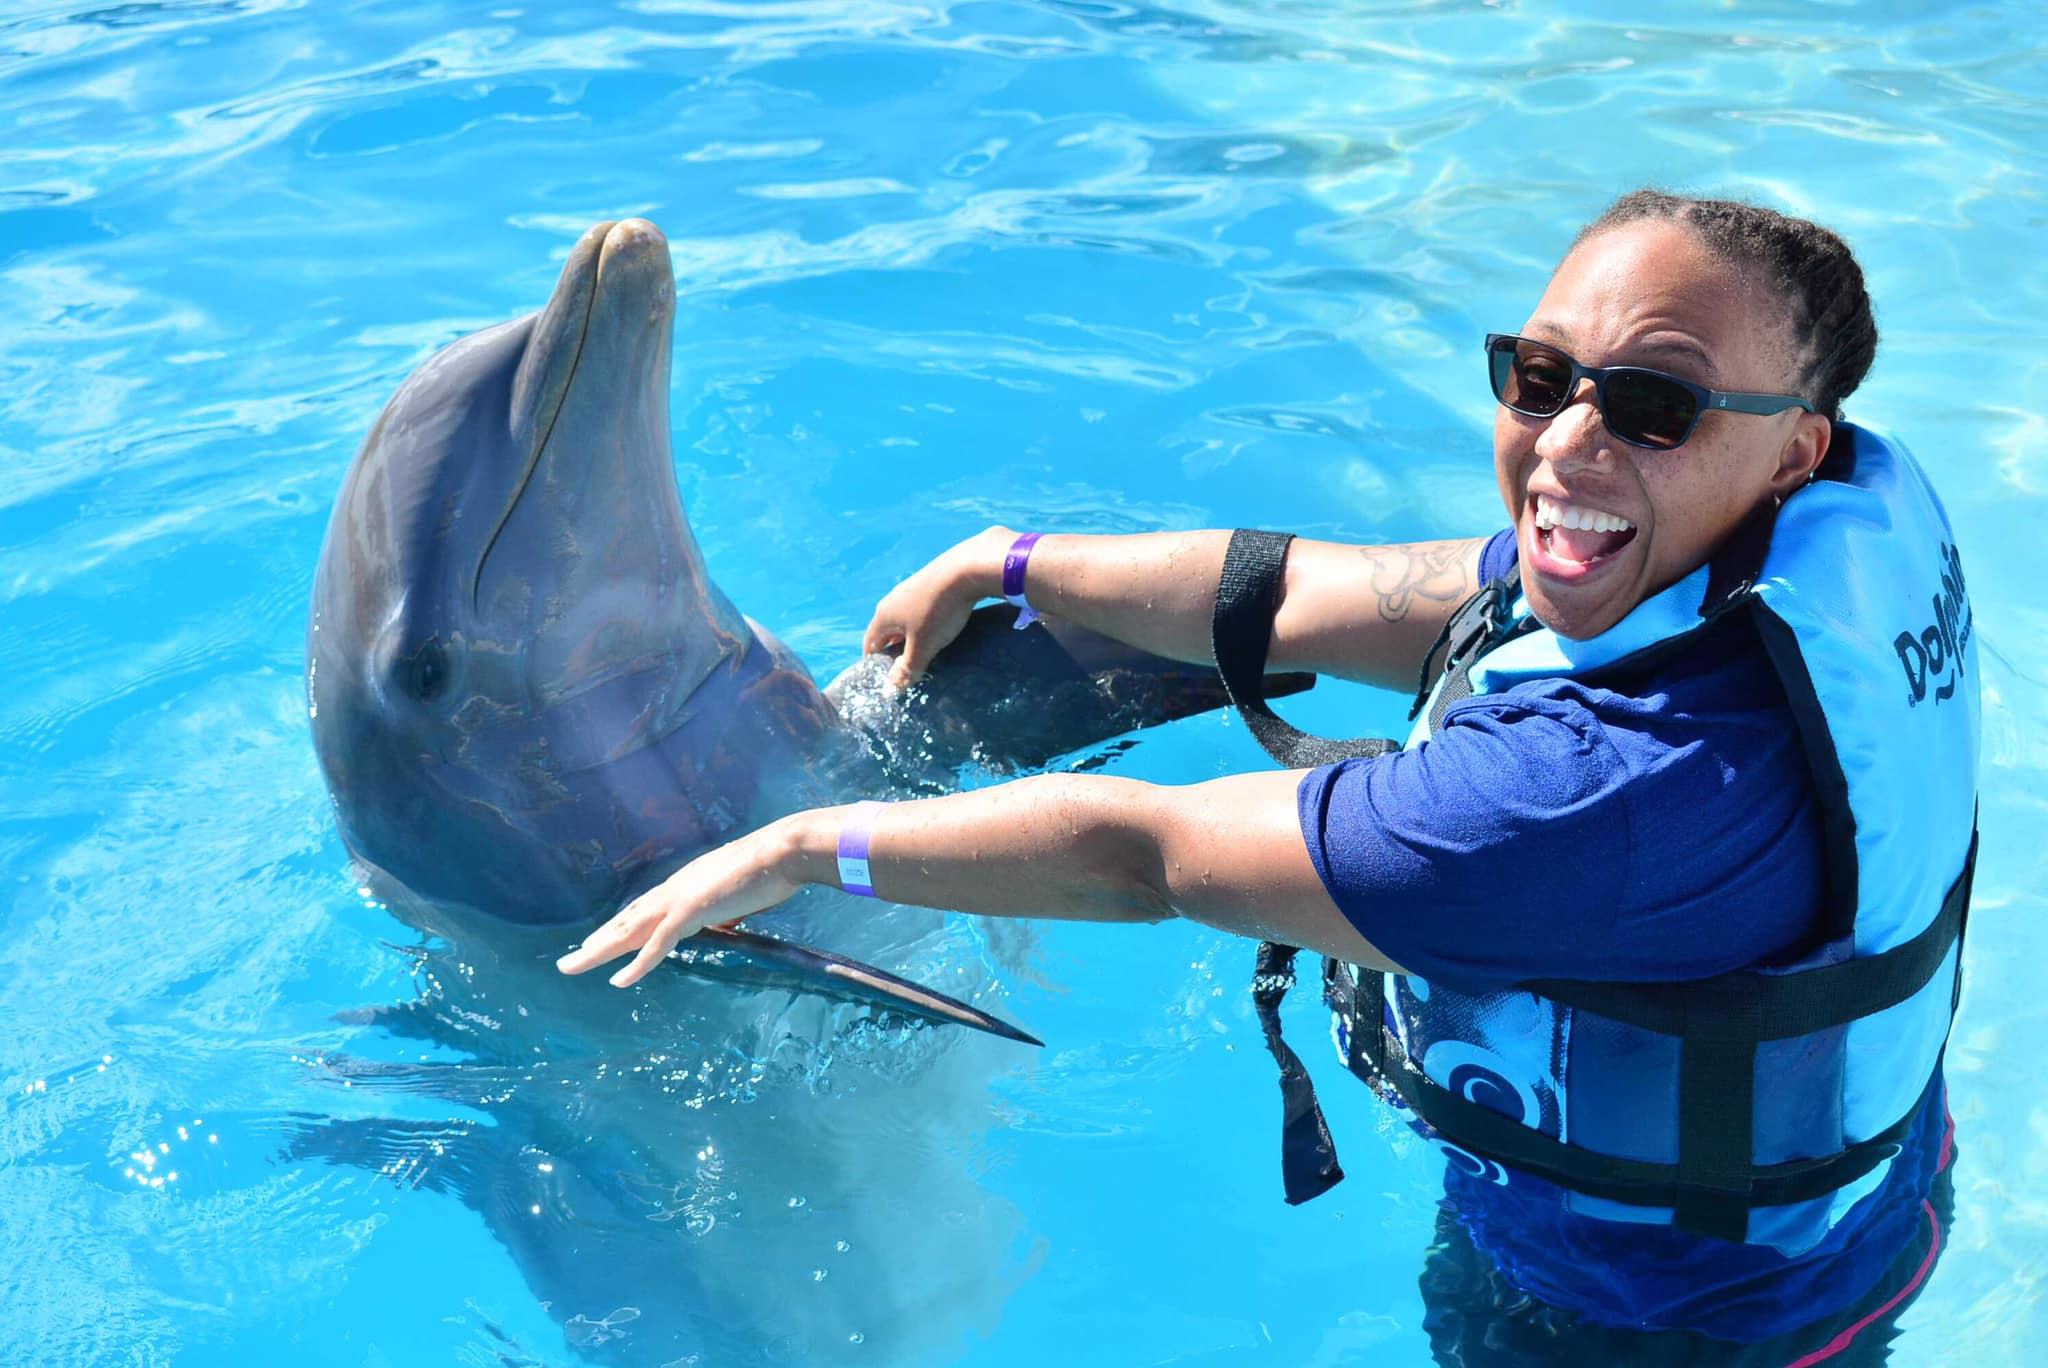 Nickole swimming with the dolphins!